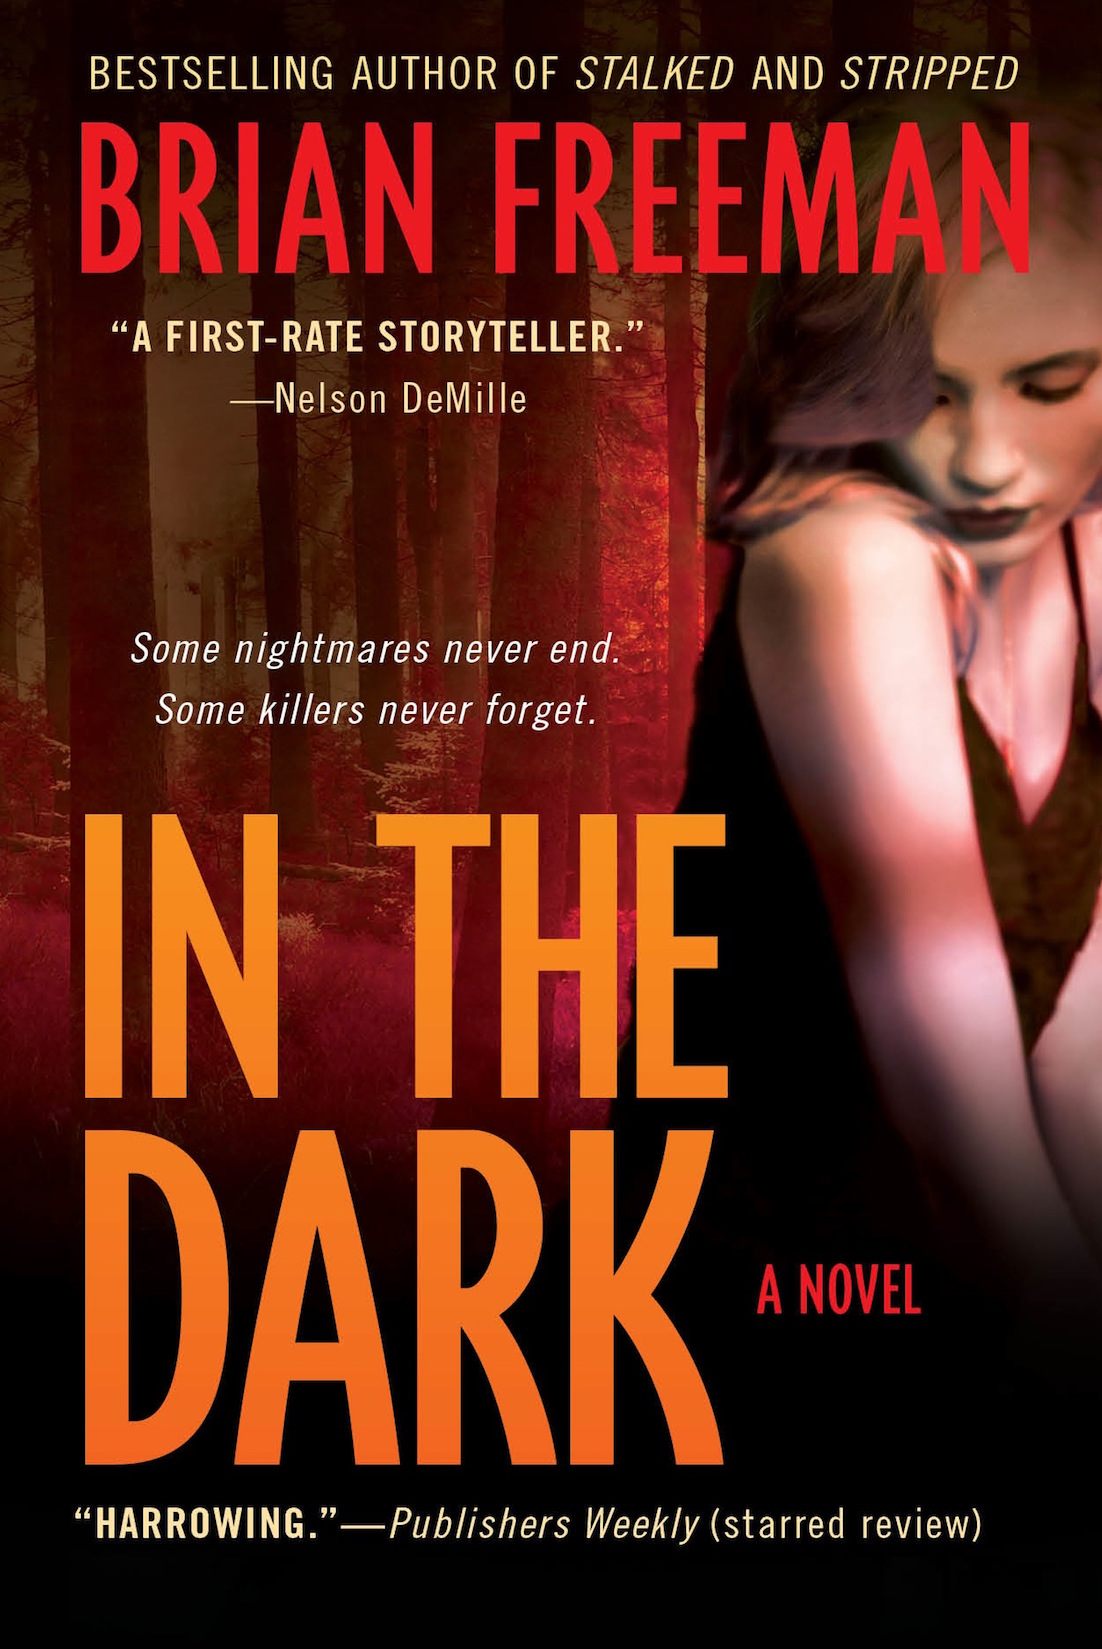 inthedark_paperback_cover_website